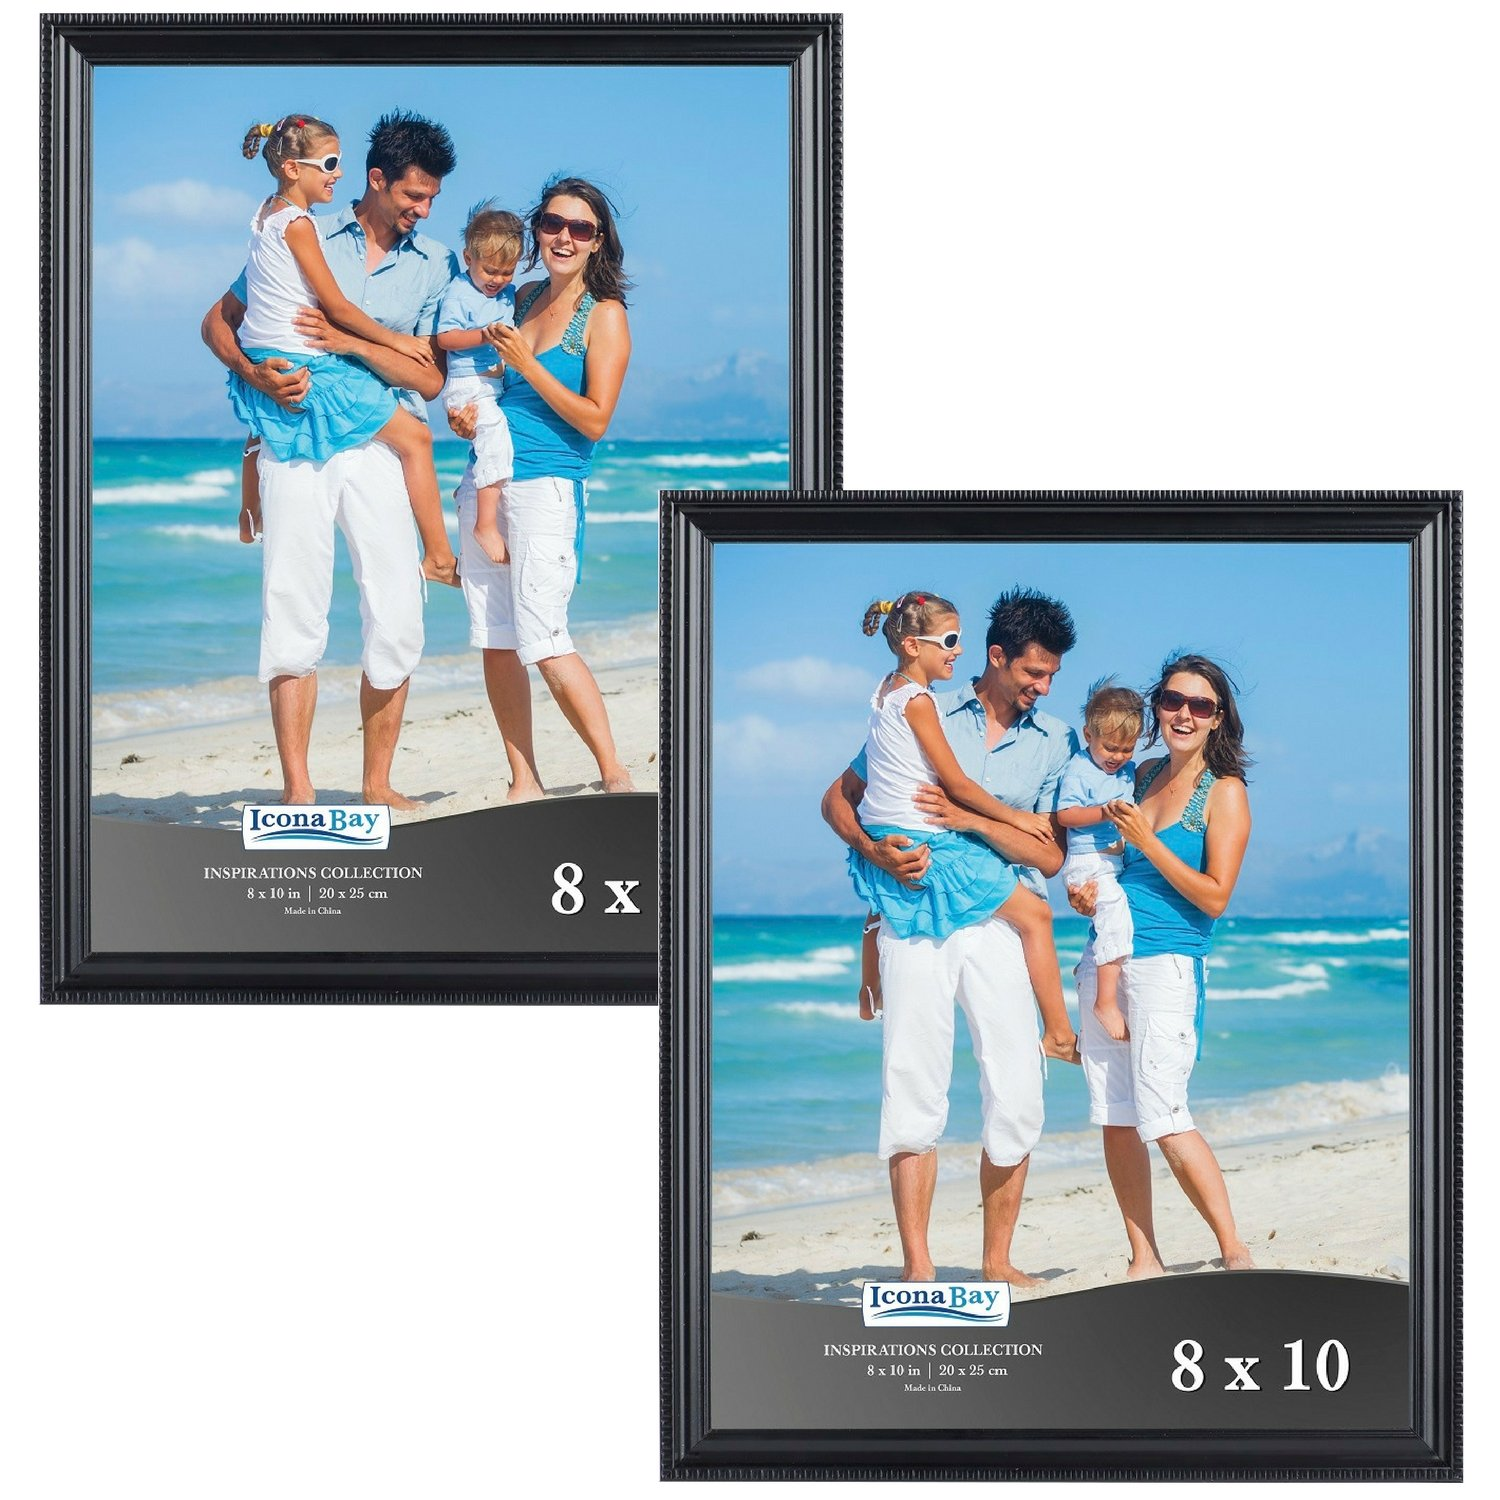 Icona Bay 8x10 Black Picture Frames Set (8 by 10, 2-Pack, Black), Wall Mount or Table Top Black Picture Frame, Display 8 by 10 Frame Vertically, or Horizontally as 10x8, Inspirations Collection